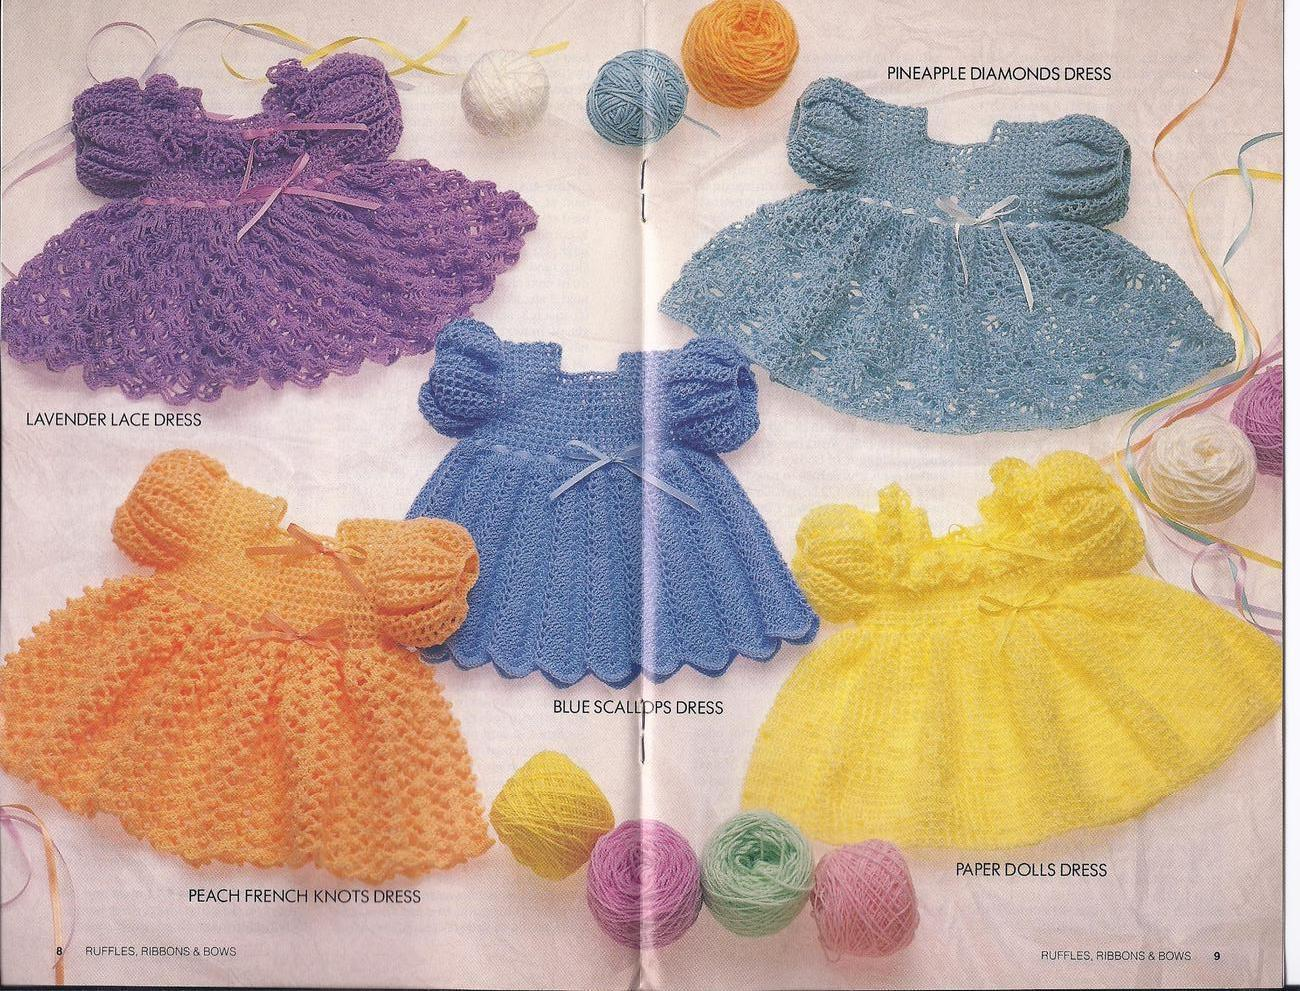 Ruffles Ribbons & Bows Baby Dresses Crochet and 50 similar items